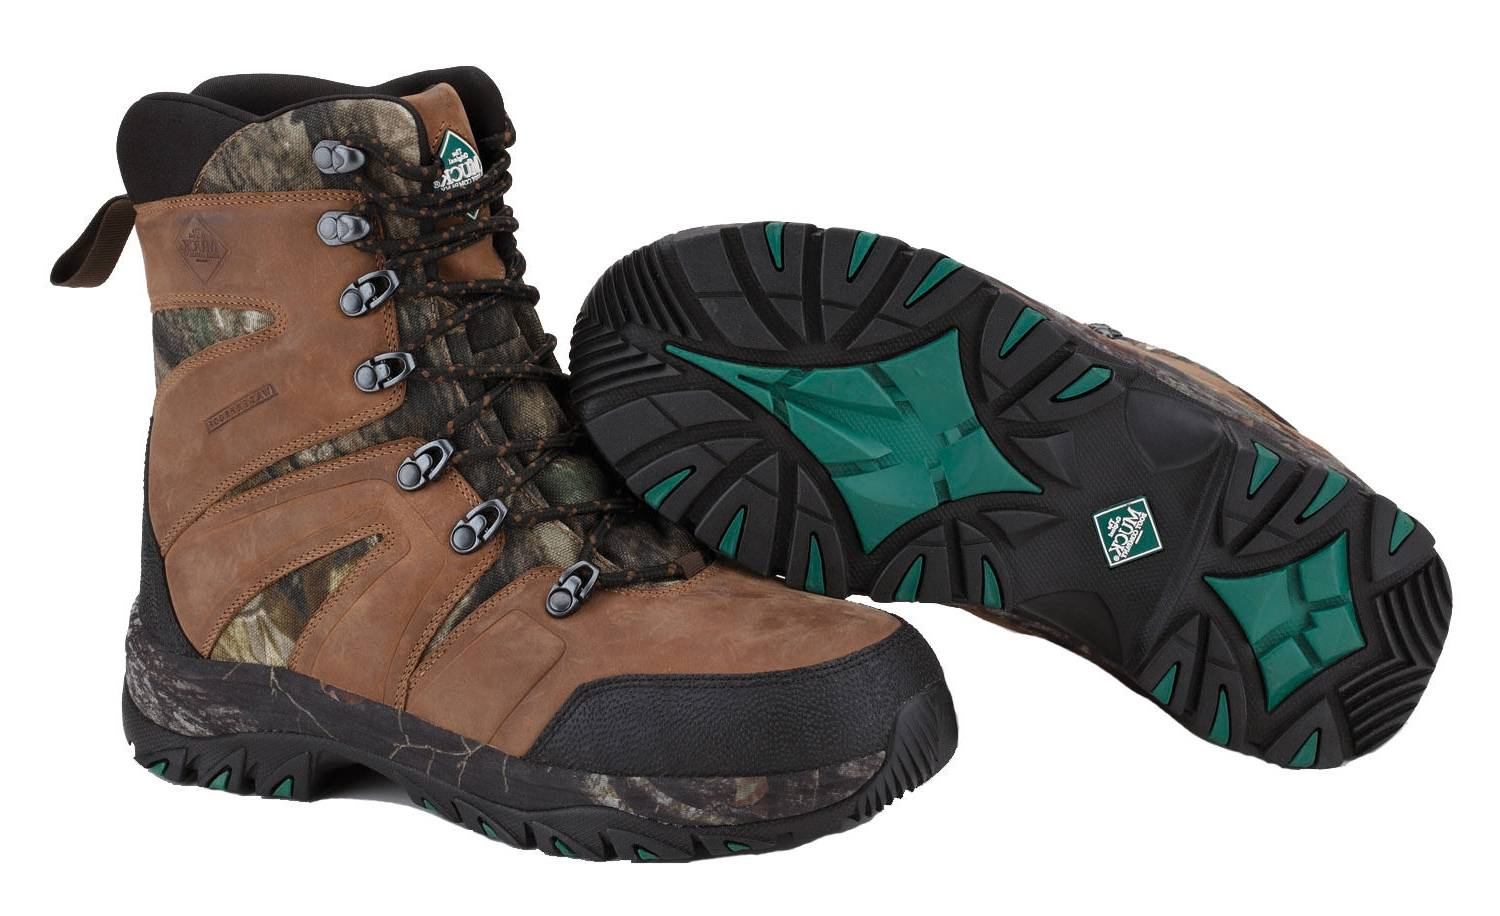 Muck Boots Men's Woodlands Extreme